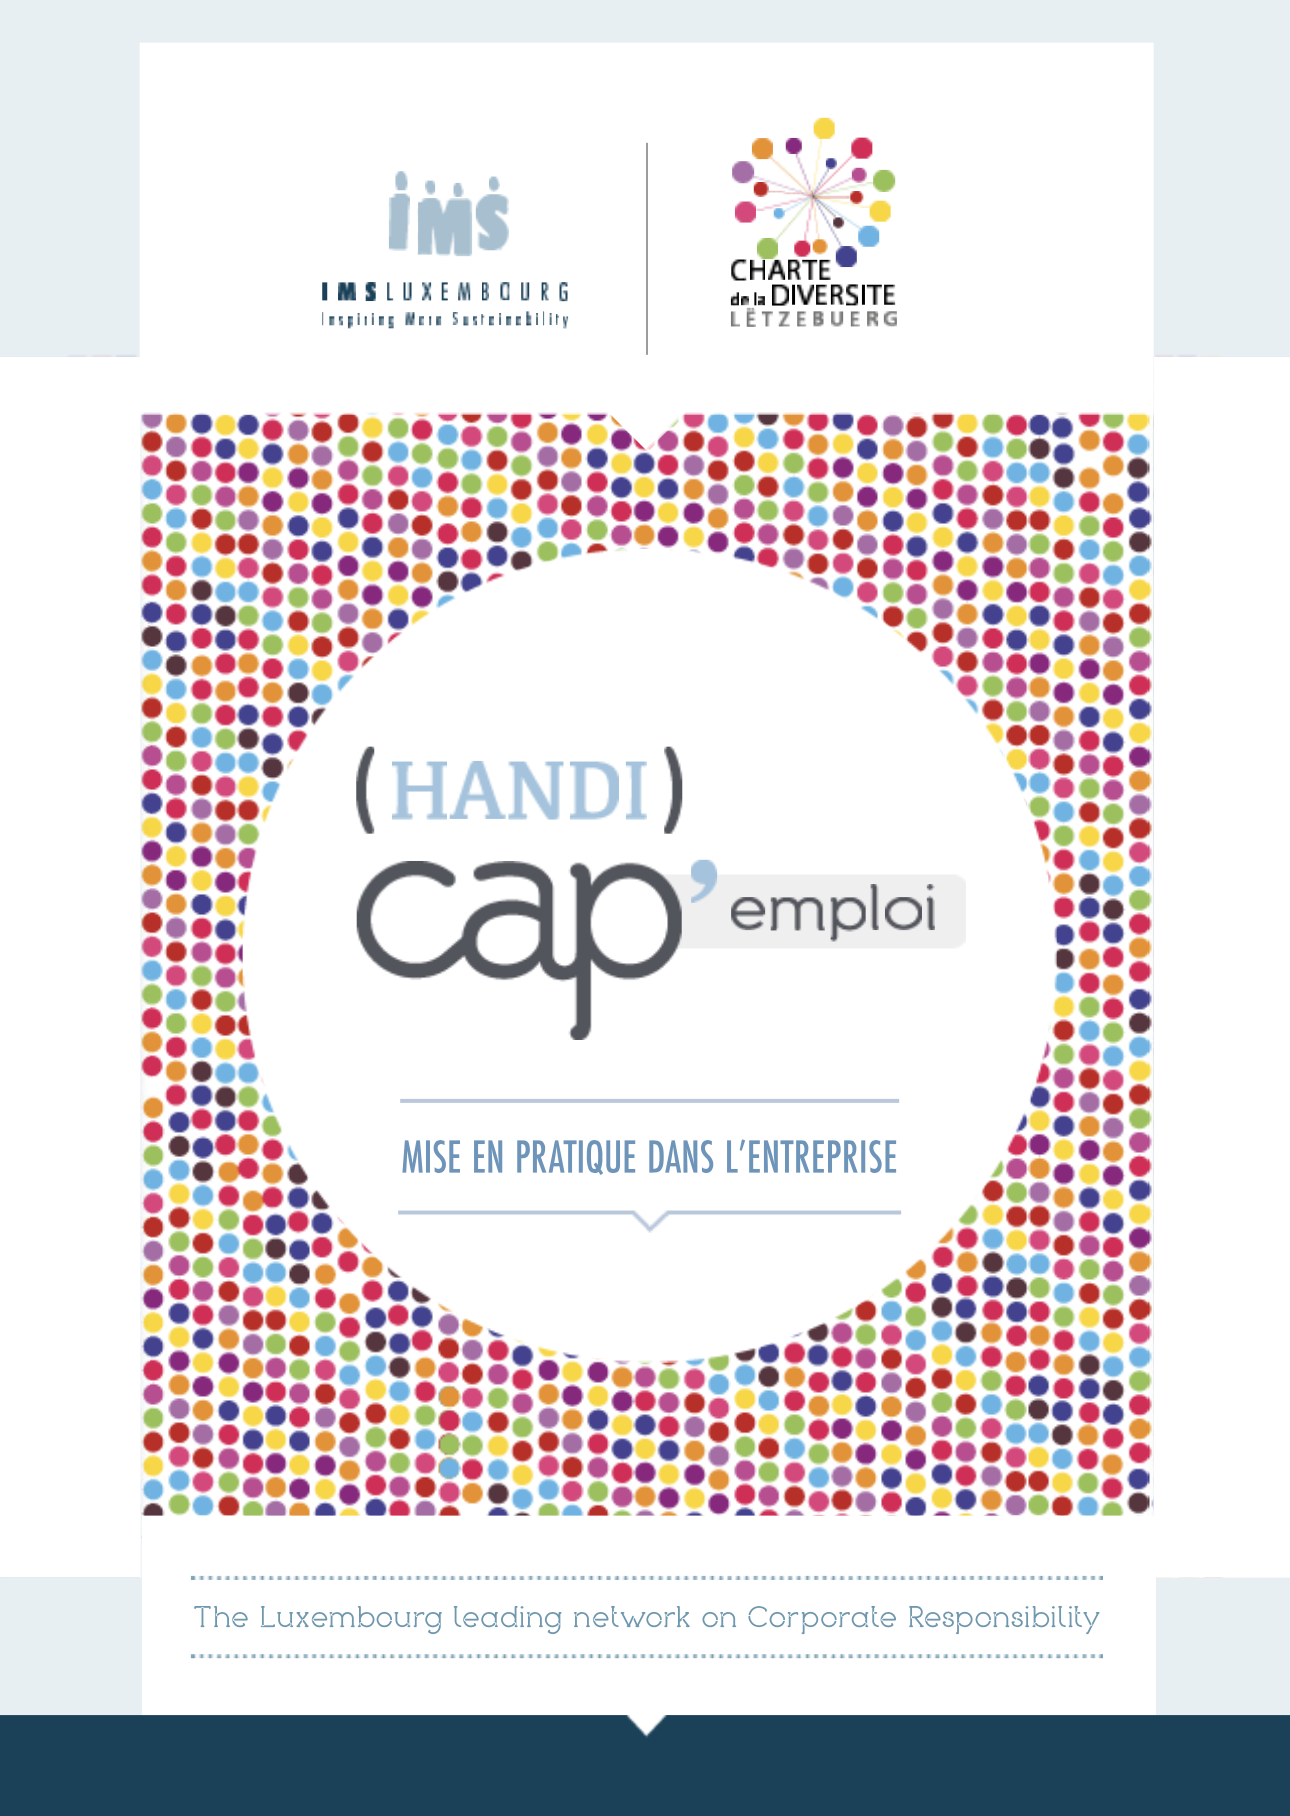 E-book (Handi)Cap' Emploi: putting it into practice in the company